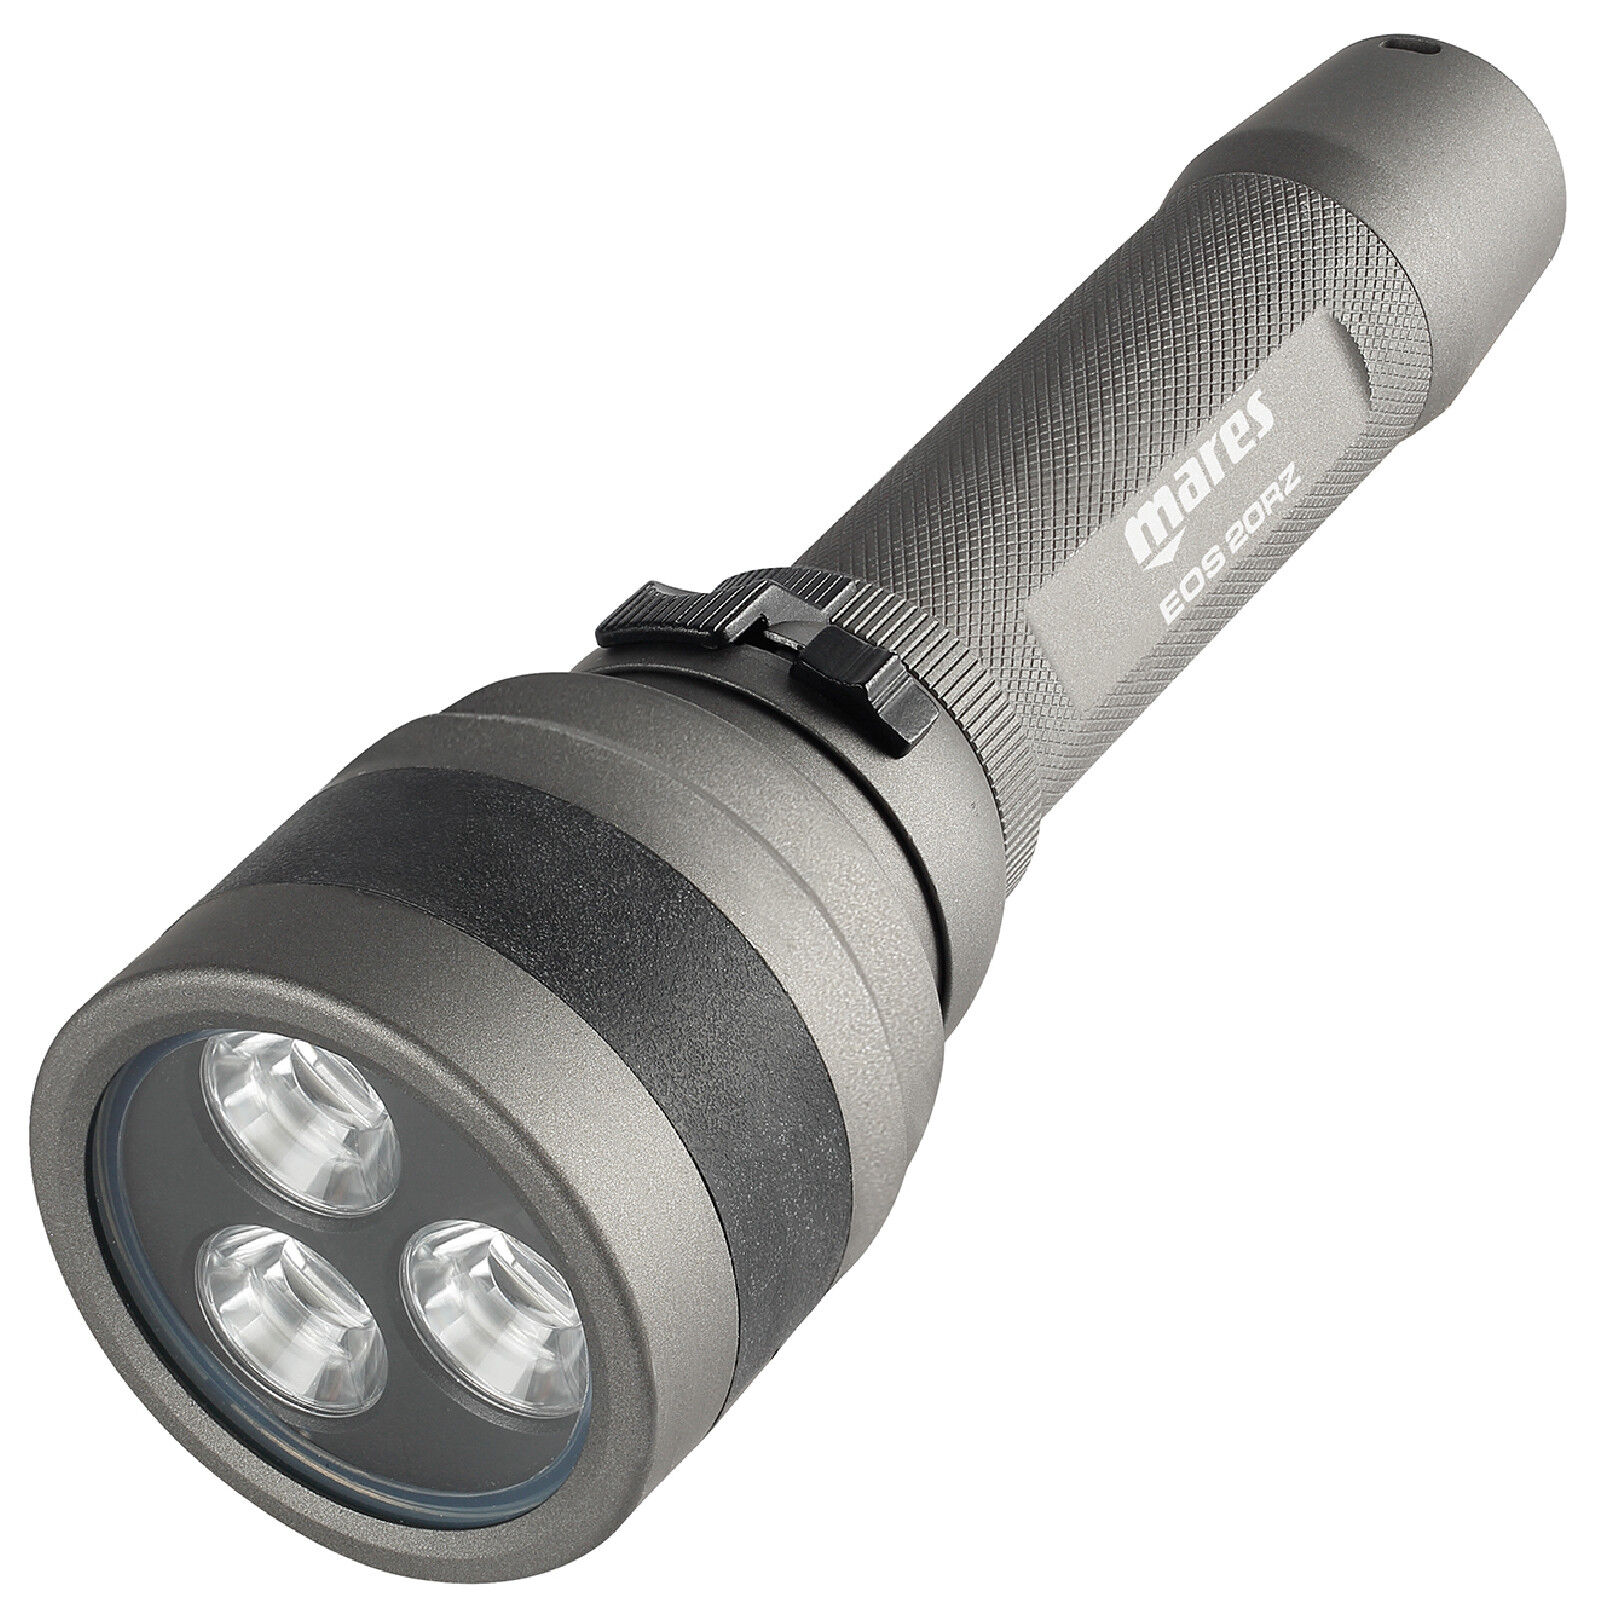 LO3 MARES Lampada EOS 20RZ metal LED torch rechargeable 2300 Lumen